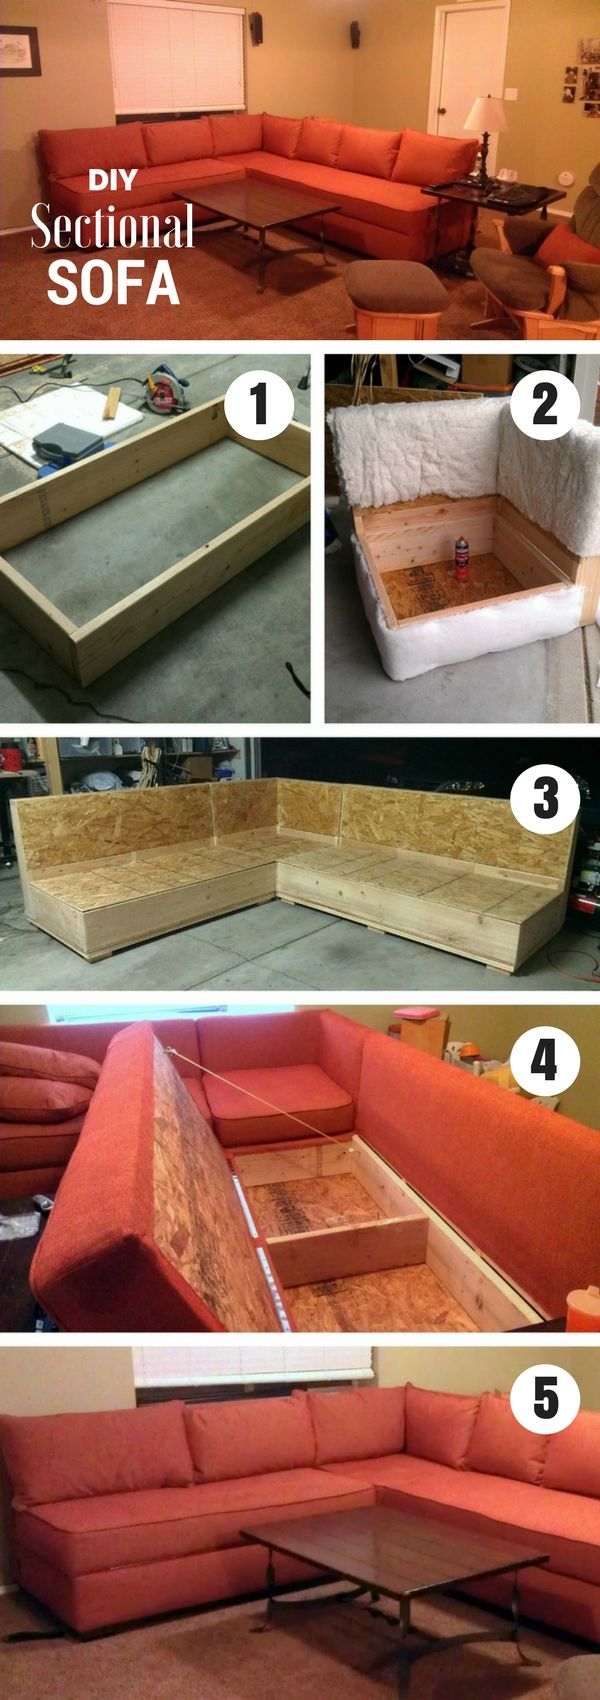 15 Easy DIY Storage Furniture Projects On A Budget